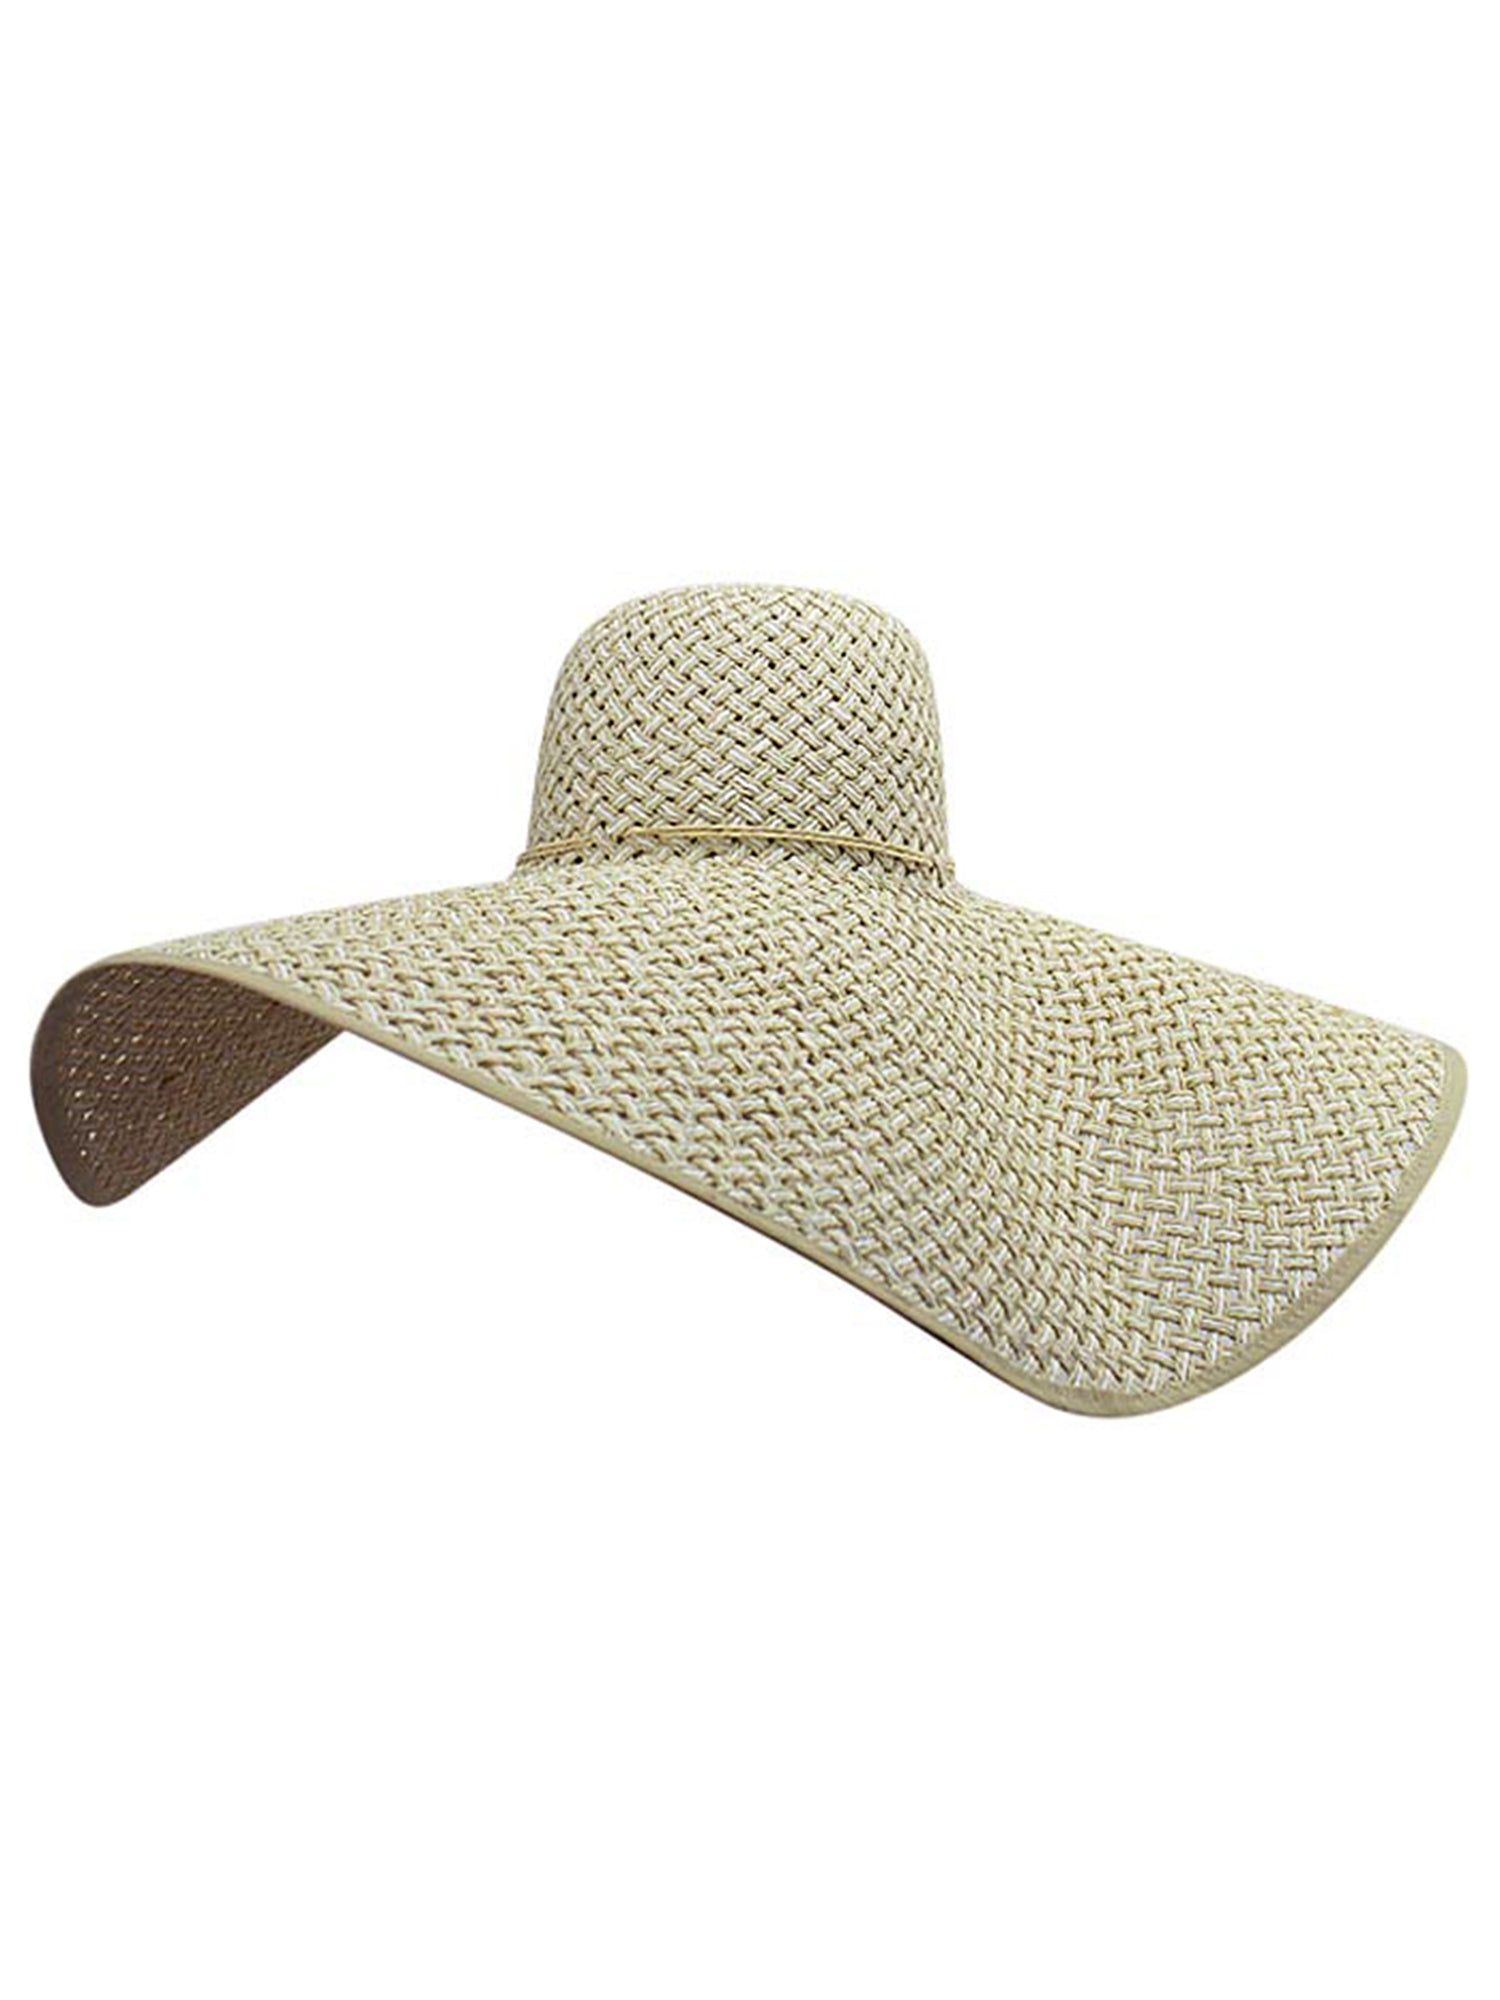 Cream & White Ultra Wide Brim Straw Floppy Hat